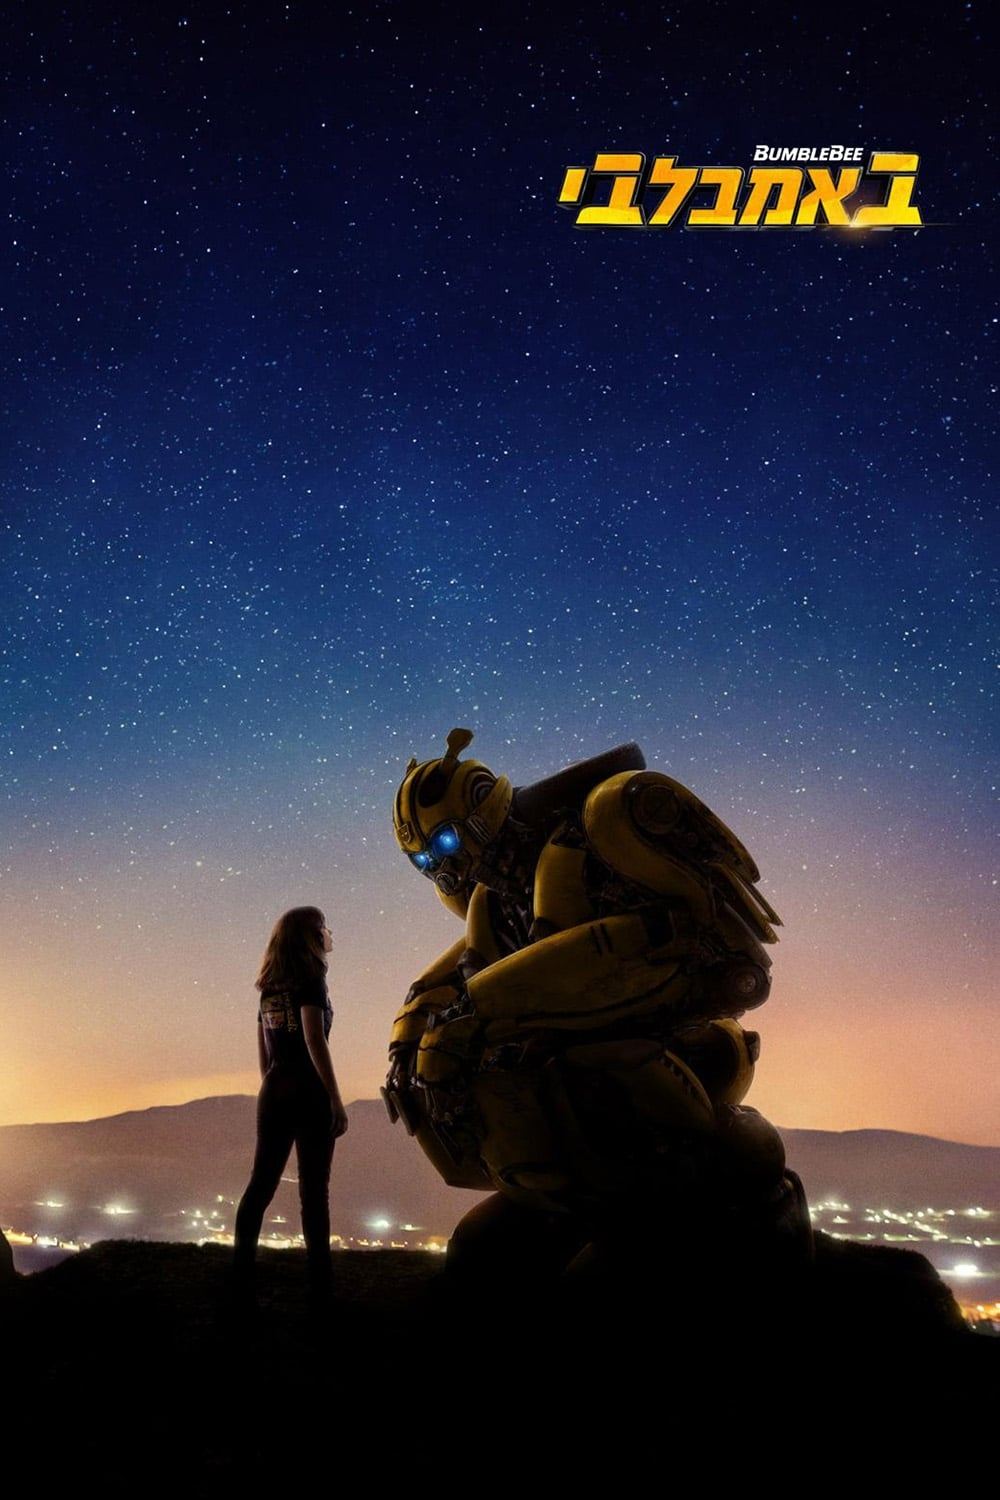 Poster and image movie Film Bumblebee 2018